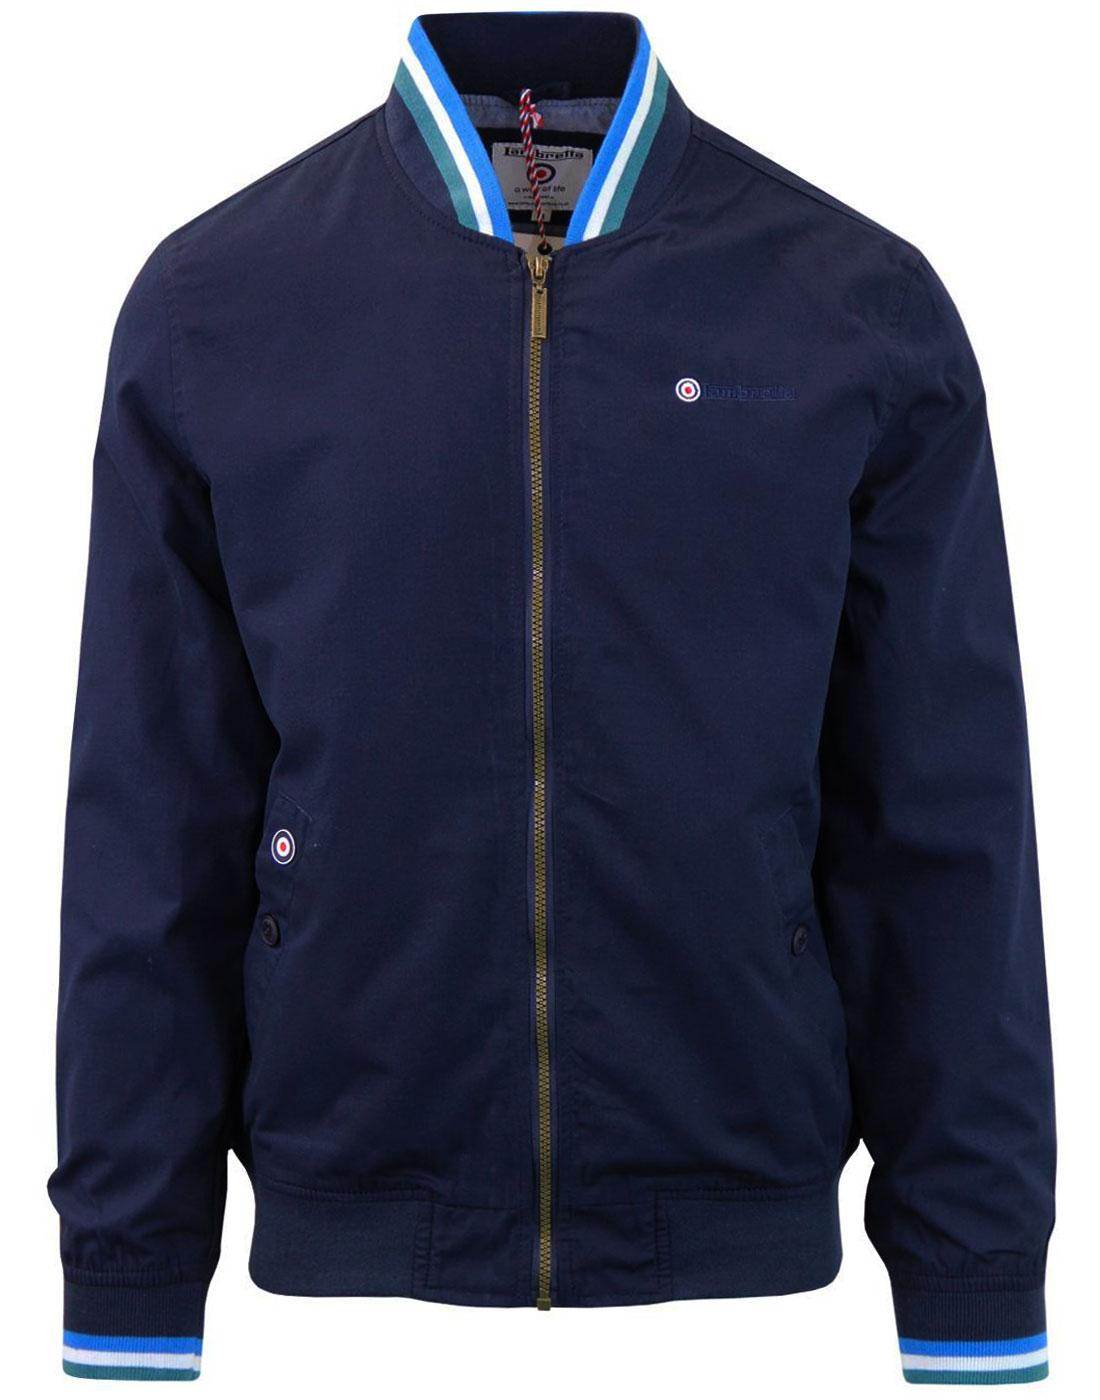 LAMBRETTA Men's Mod Tipped Monkey Jacket (NAVY)